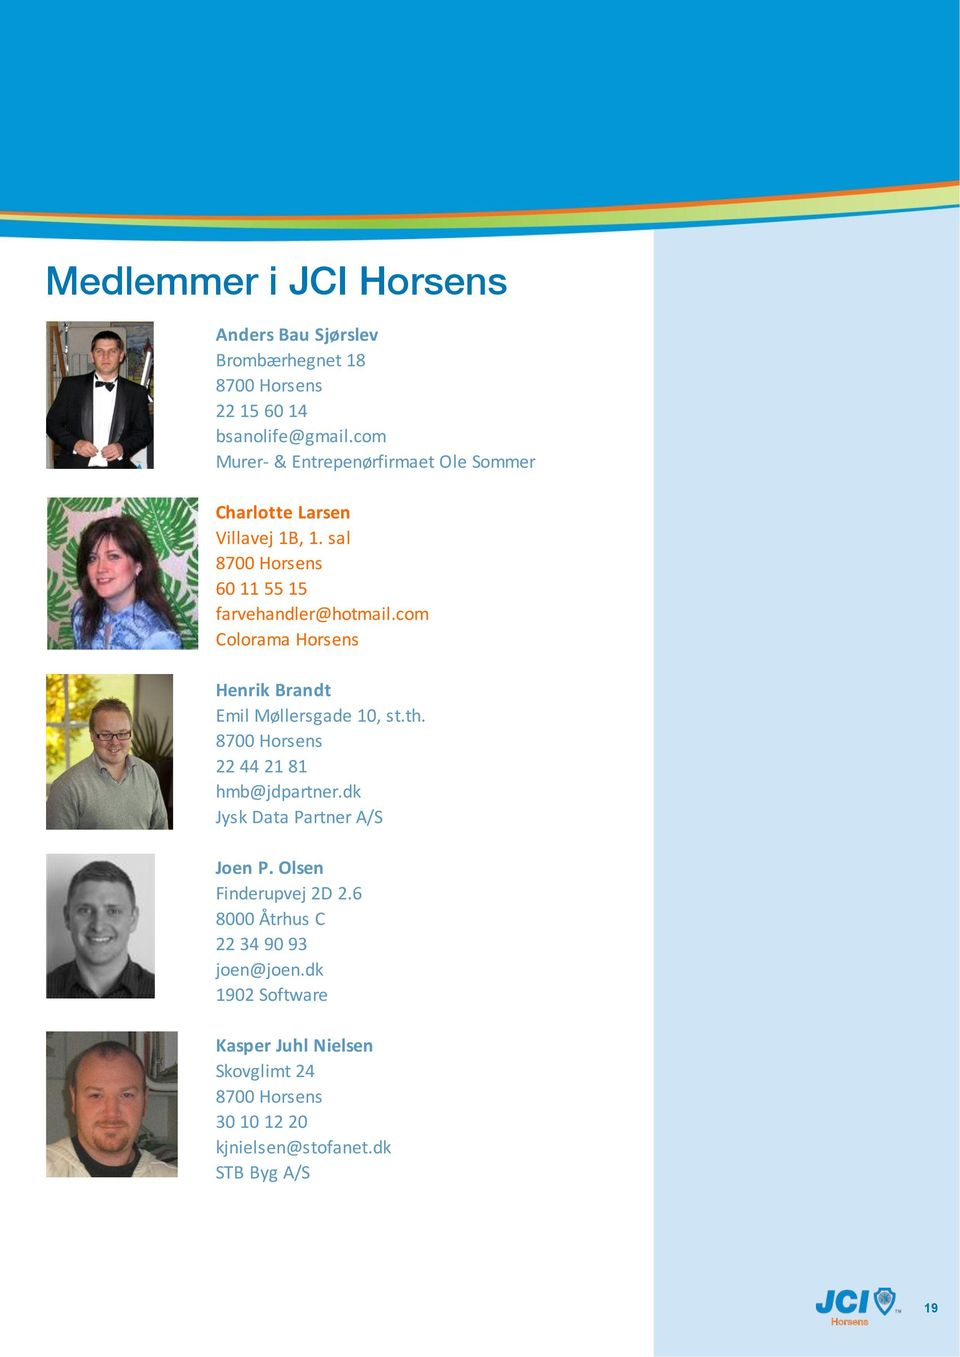 com Colorama Henrik Brandt Emil Møllersgade 10, st.th. 8700 22 44 21 81 hmb@jdpartner.dk Jysk Data Partner A/S Joen P.